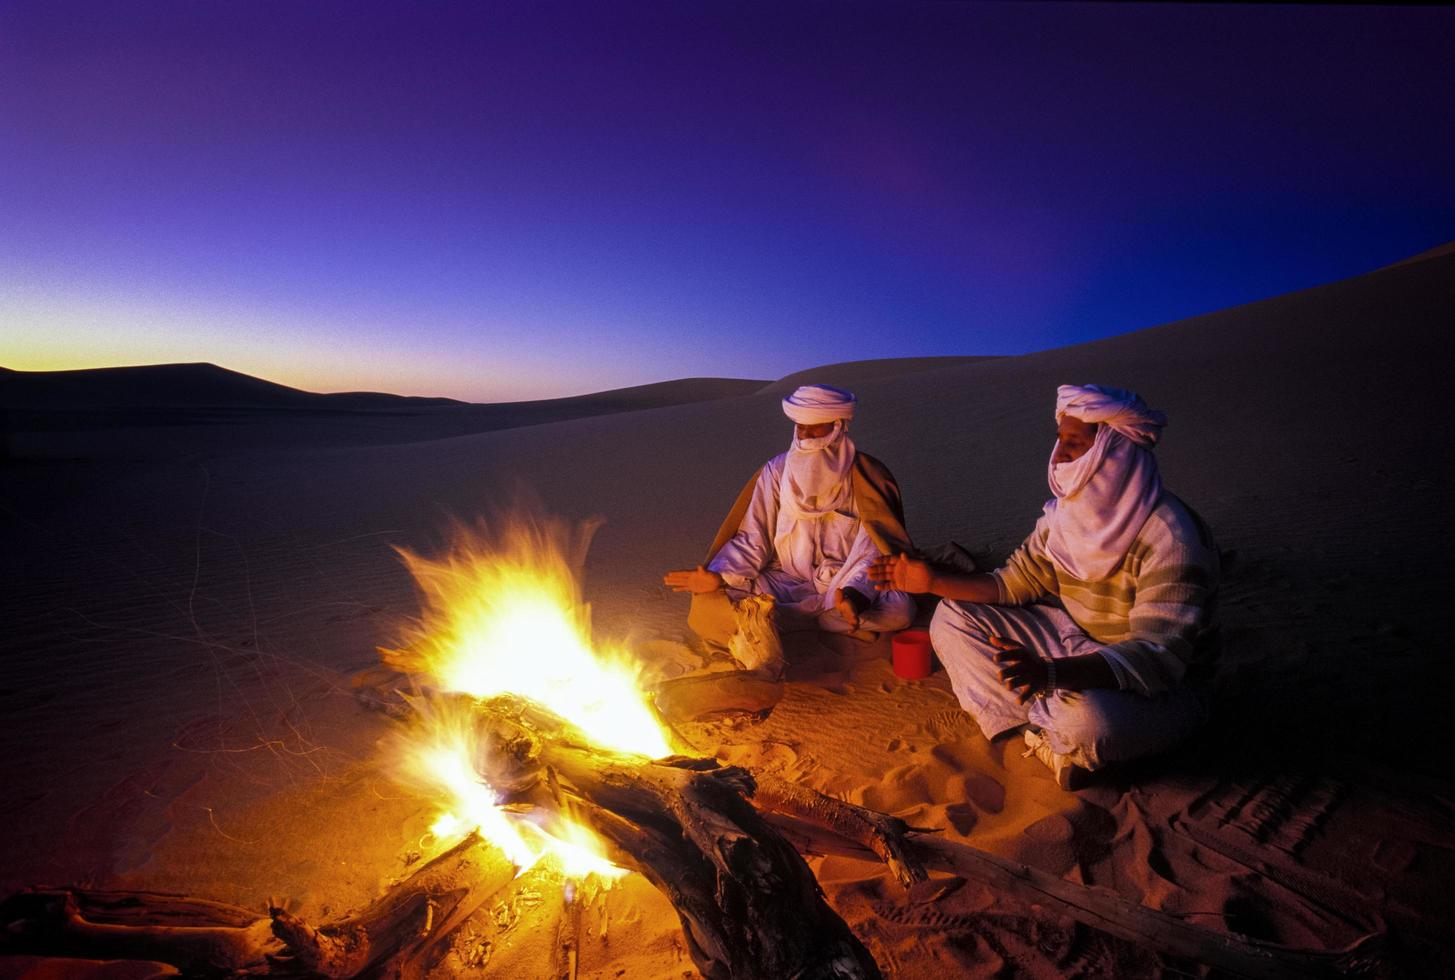 Tikobaouine Algeria 2010- Unknown people in front of the fire at sunset in the Tassili n'Ajjer desert photo